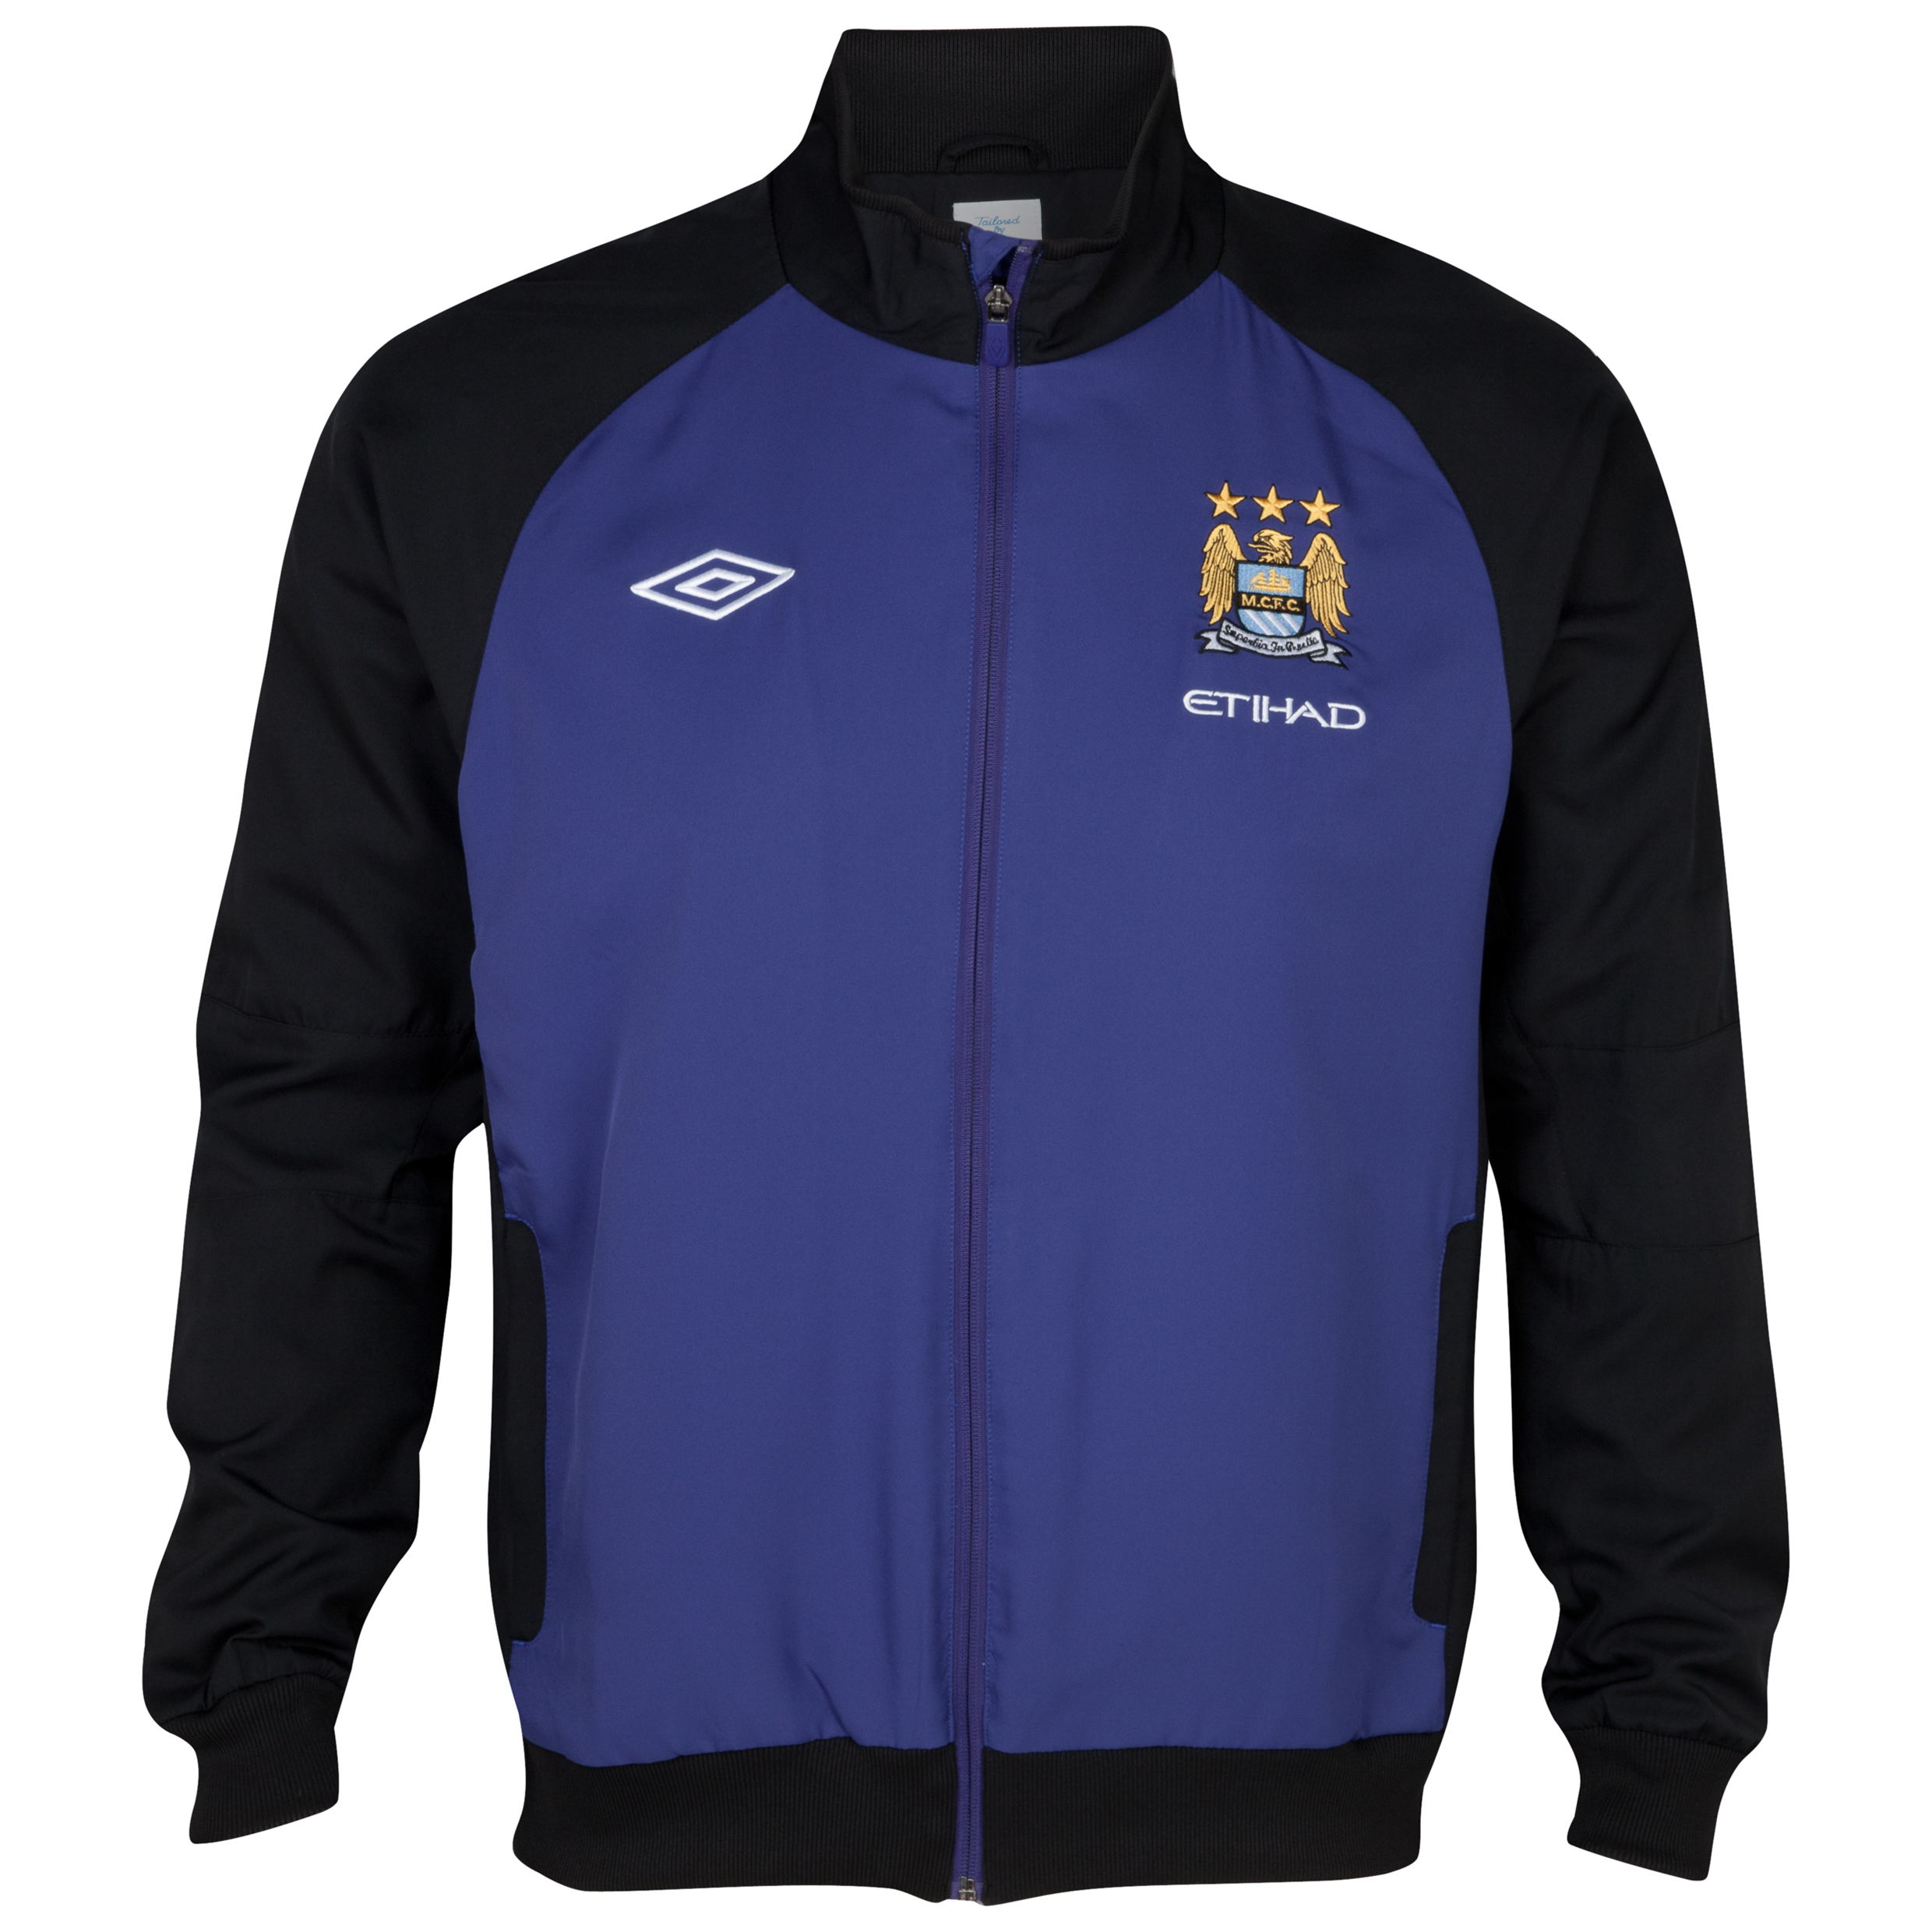 Manchester City Training Woven Jacket - Junior - Deep Wisteria / Black